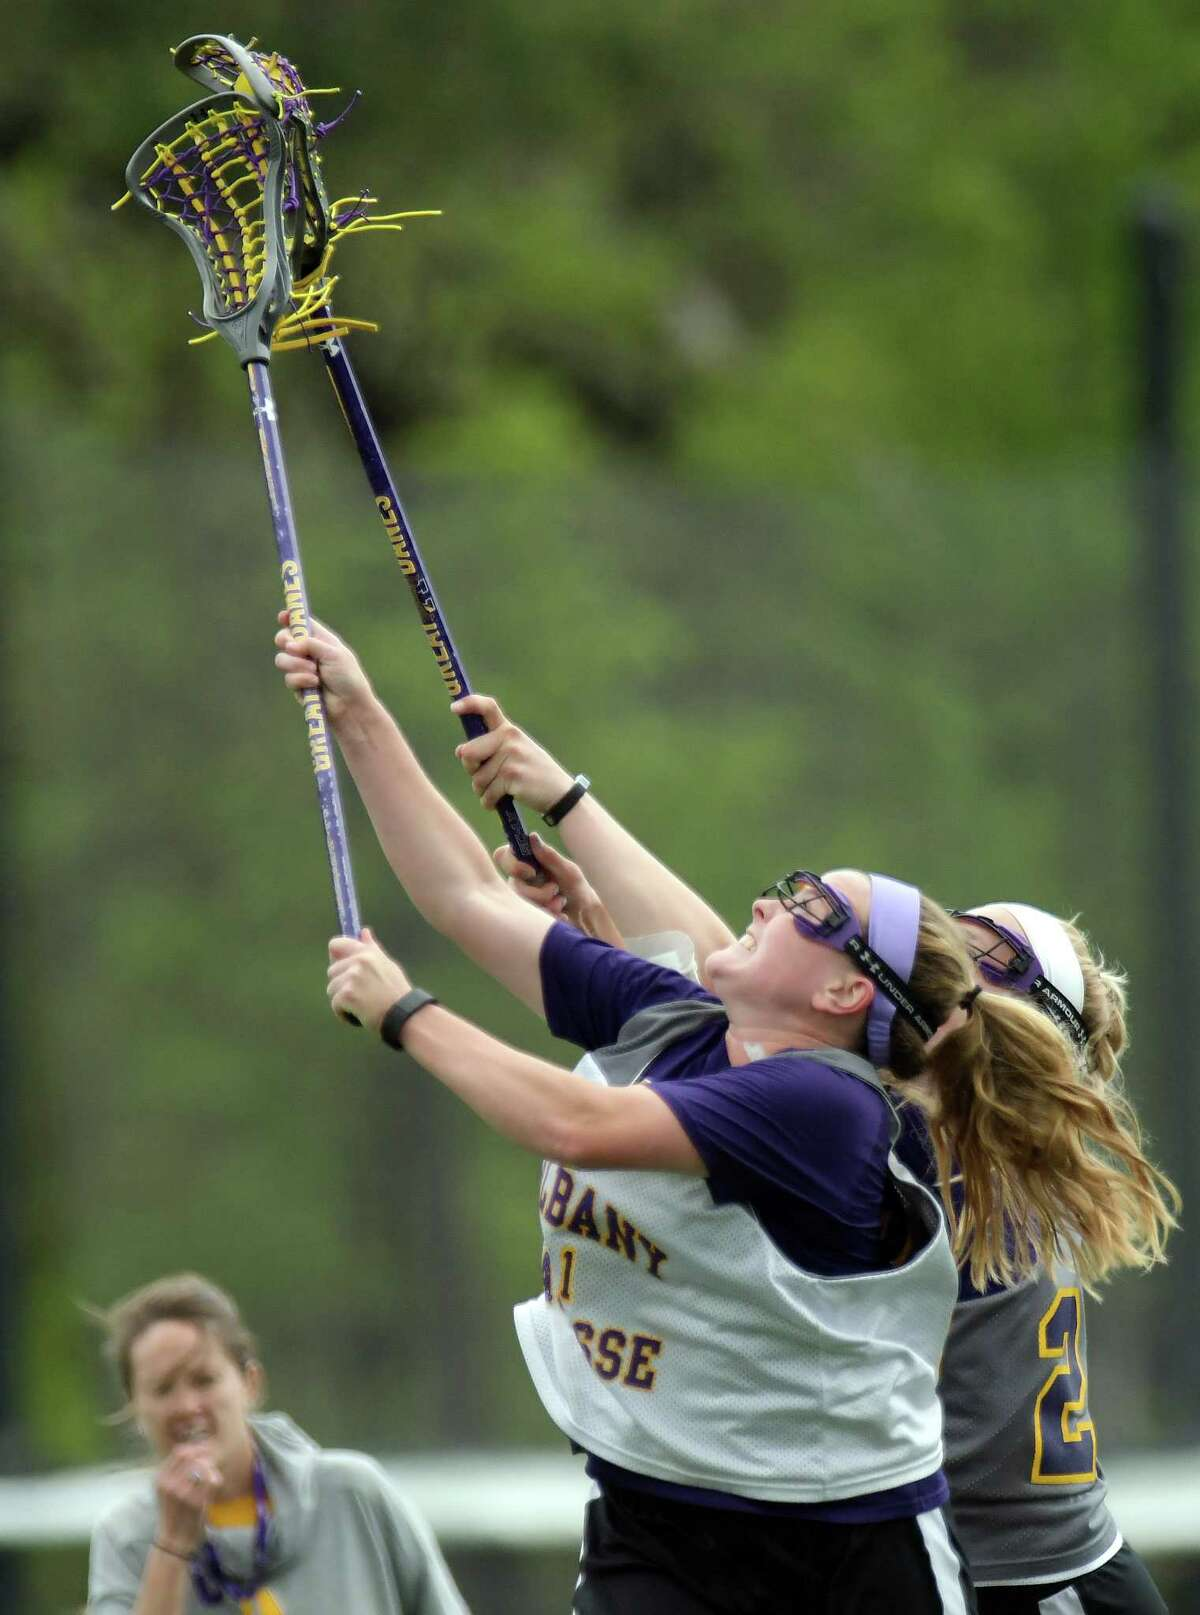 UAlbany women's lacrosse player Sarah Martin takes part in practice on Tuesday, May 2, 2017, in Albany, N.Y. Martin is a nominee for the Tewaaraton Award. (Paul Buckowski / Times Union)